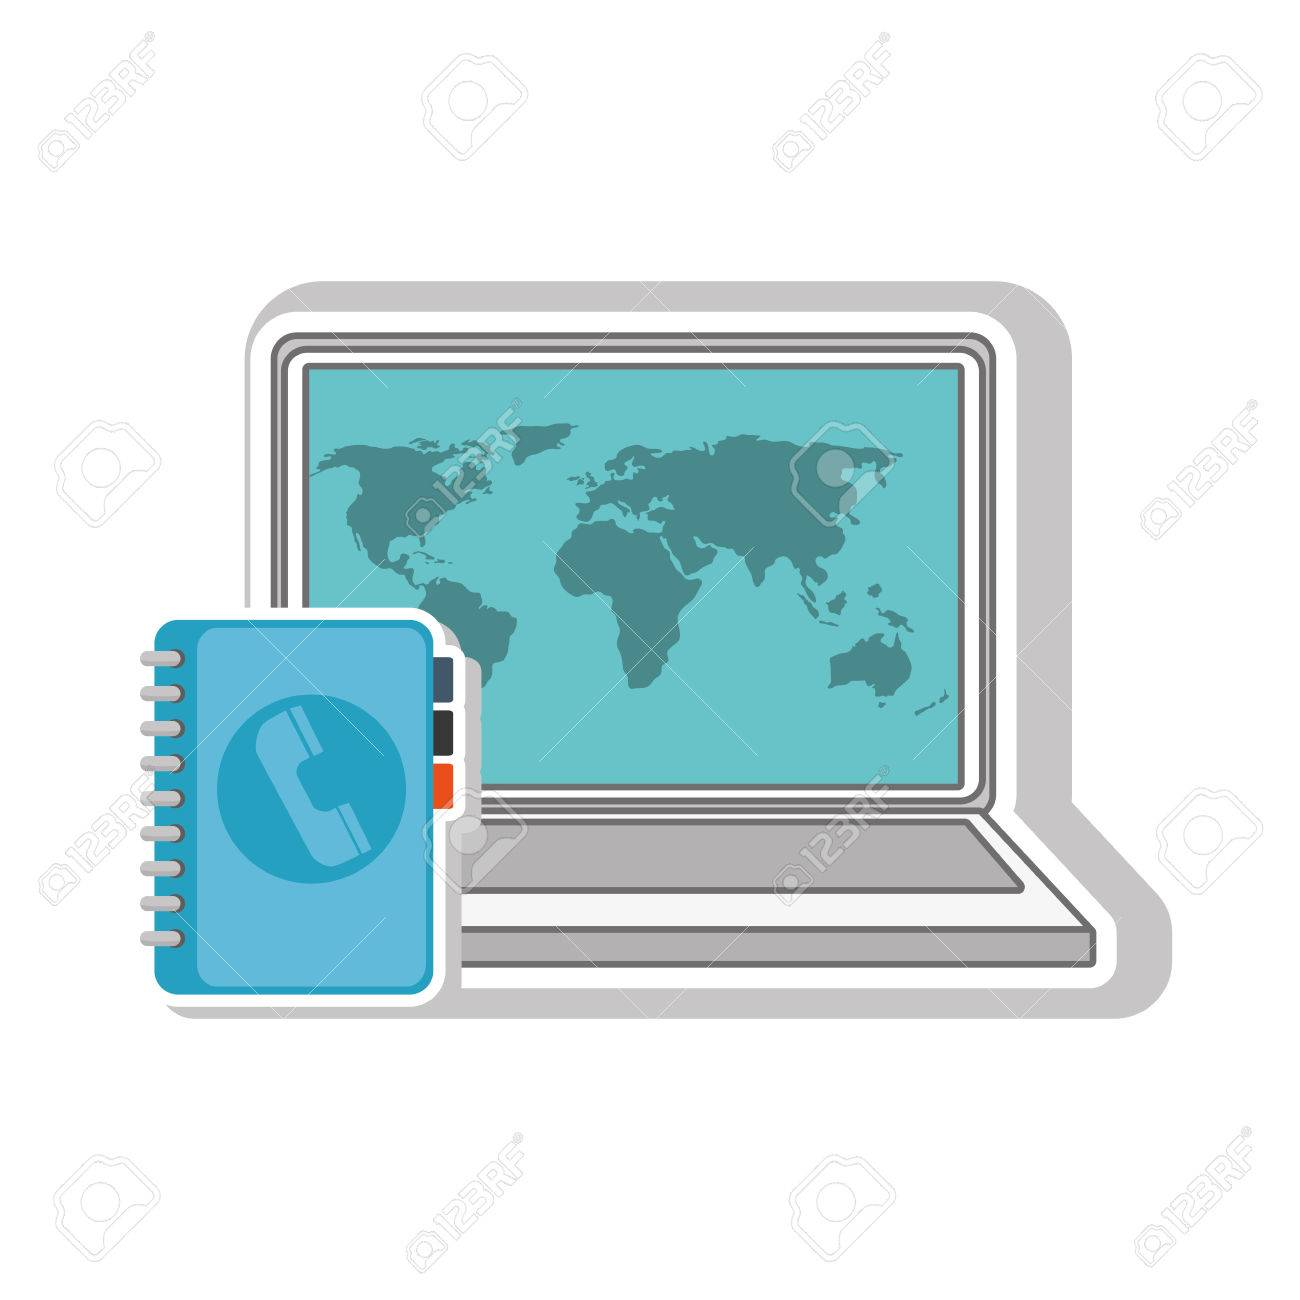 Laptop computer with world map wallpaper and directory book icon laptop computer with world map wallpaper and directory book icon vector illustration stock vector gumiabroncs Image collections